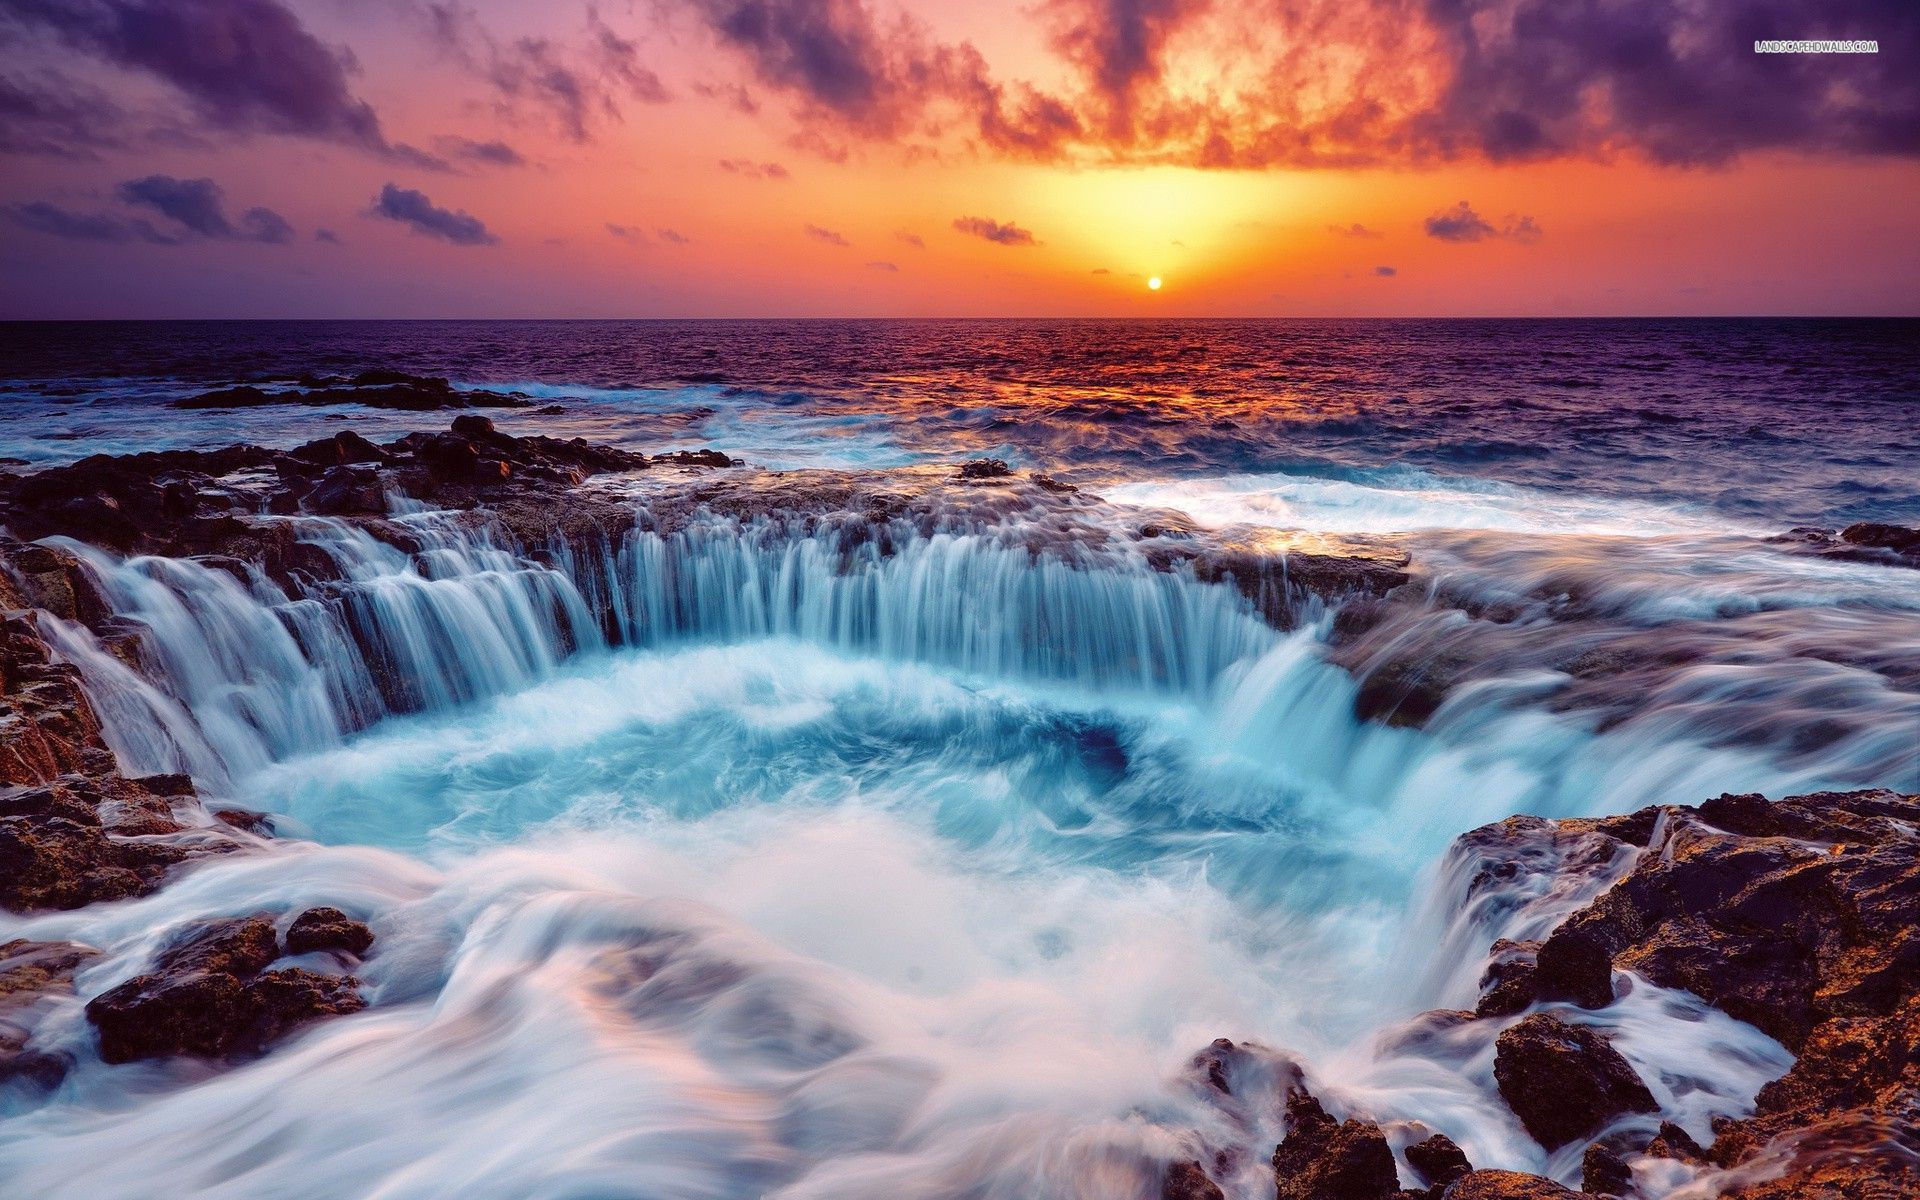 3d Abstract Sunset Beach From Another World Ipad Wallpaper: Ocean Rocks Waterfall Sunset Wallpapers